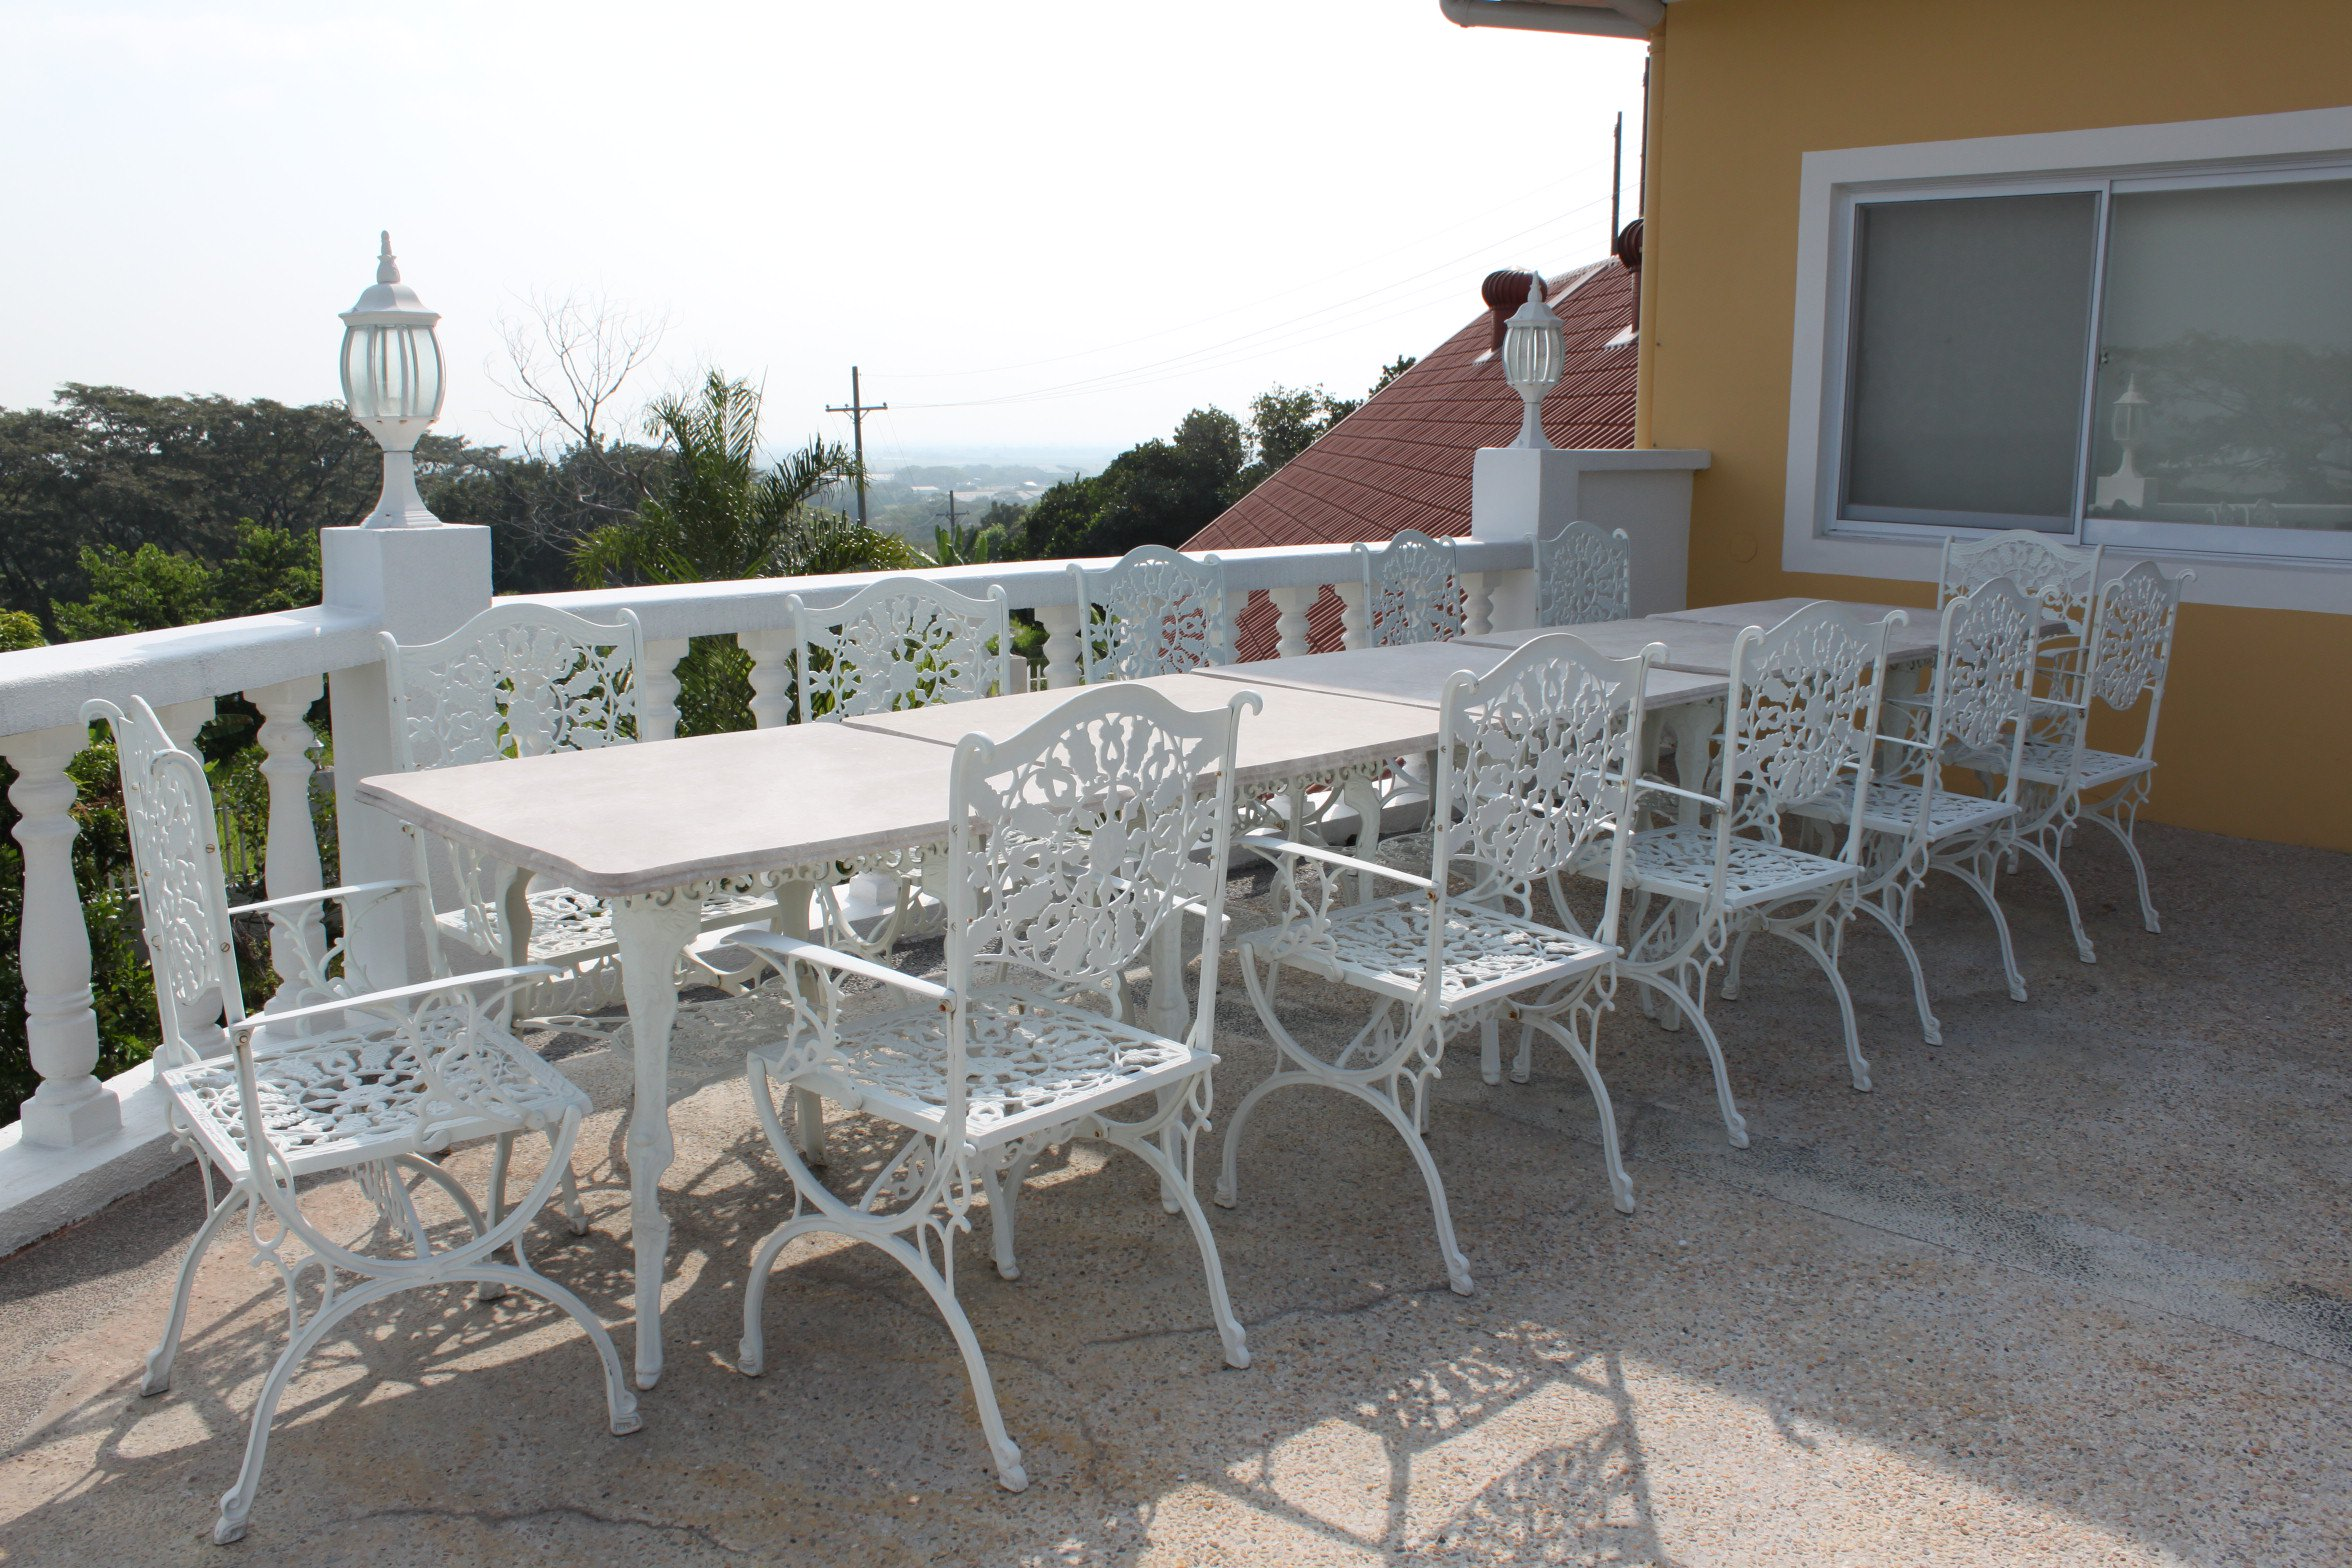 Philippines Used Outdoor Patio Lawn Garden Furniture For Sale Buy Sell Adpost Com